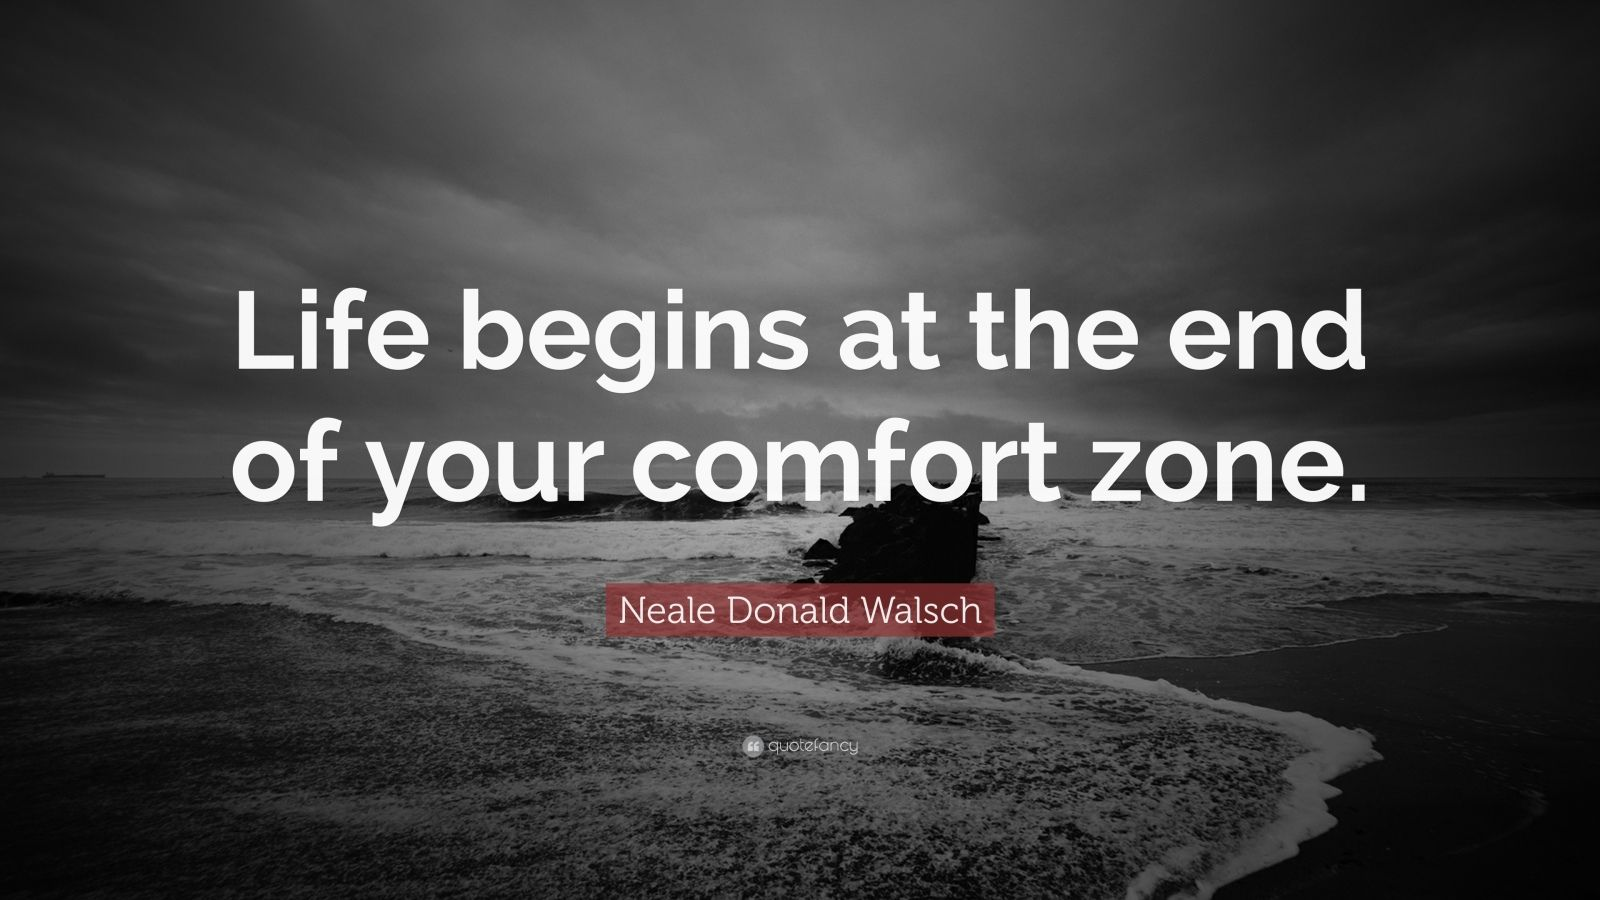 Discovery Channel Hd Wallpapers Neale Donald Walsch Quote Life Begins At The End Of Your